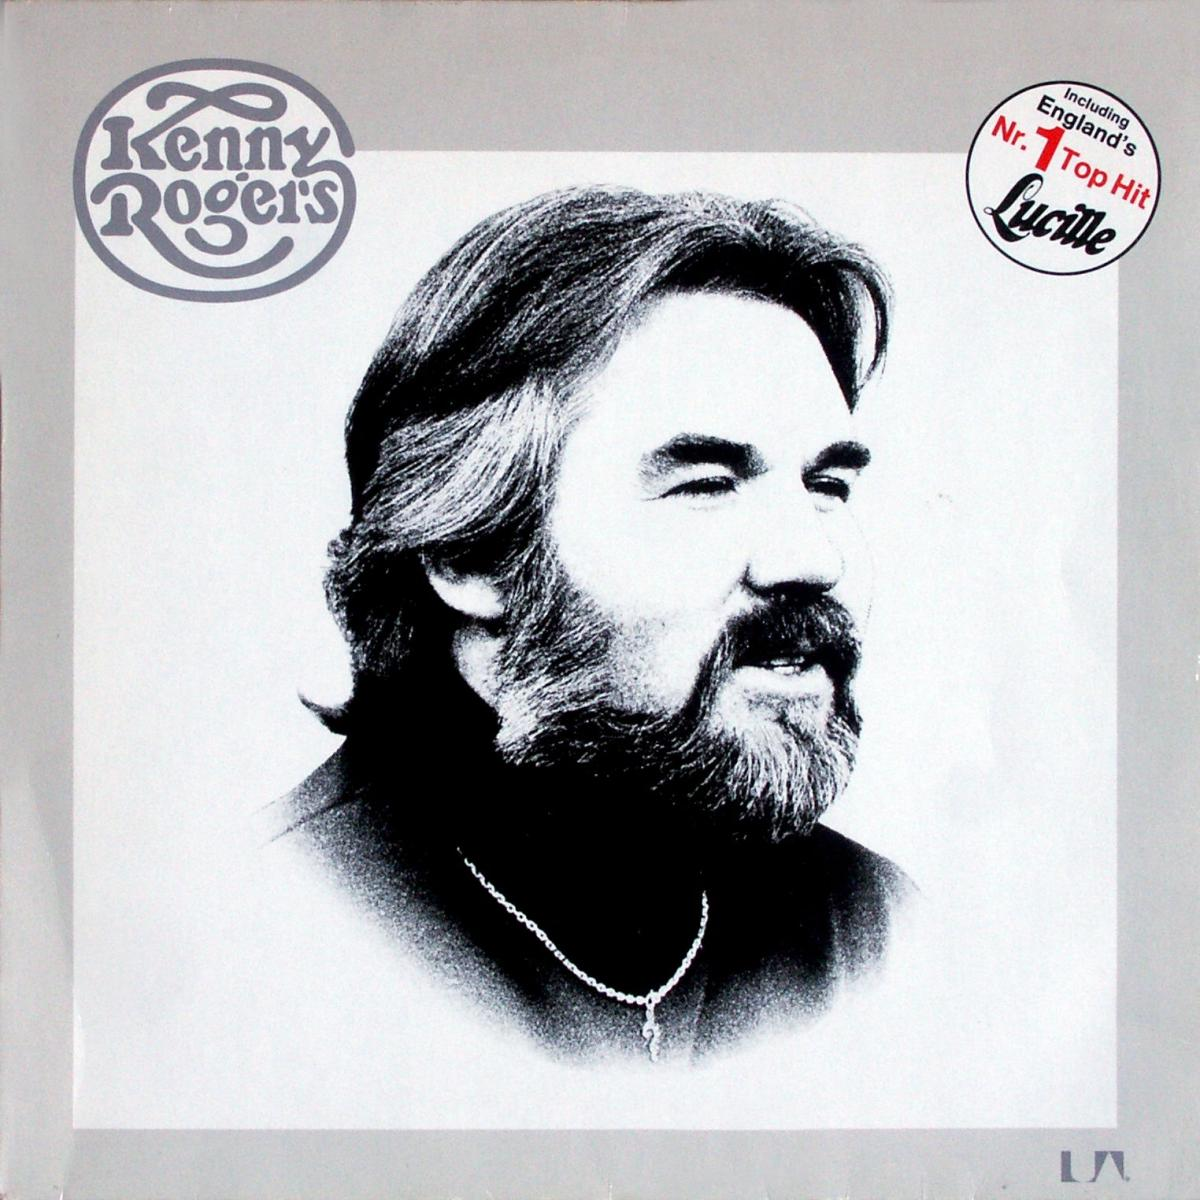 Rogers, Kenny - Kenny Rogers [LP]